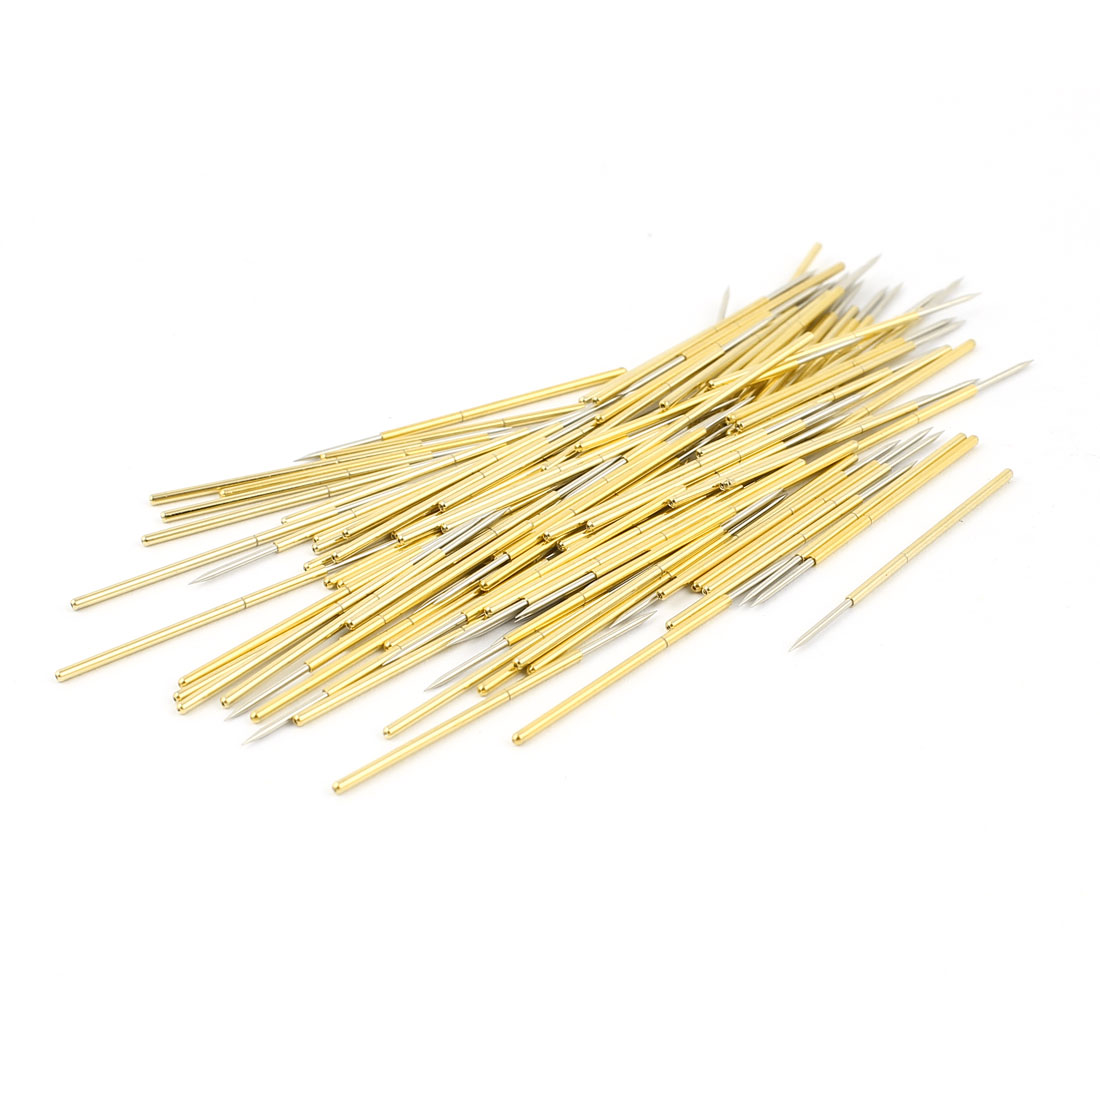 100 Pcs PL75-B1 0.74mm Spear Tip Spring Testing Probes Pin 33mm Length